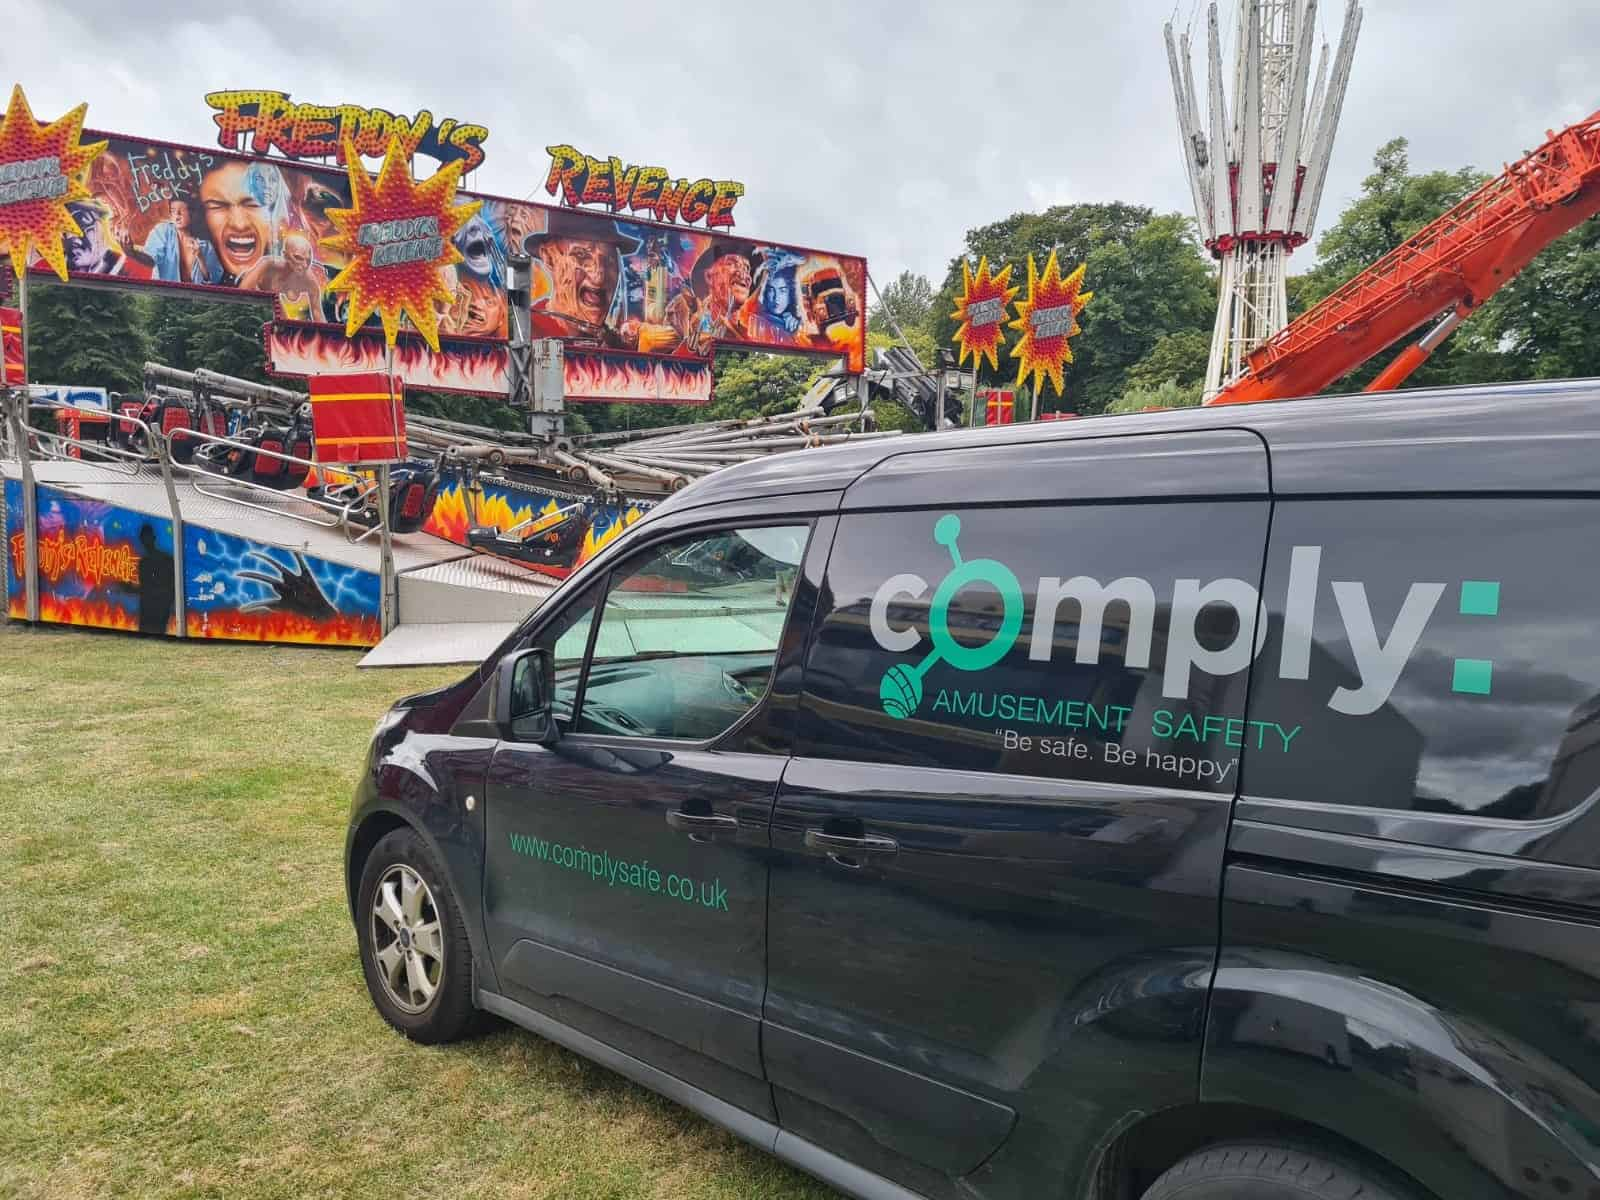 Black van with comply logo on side at theme park